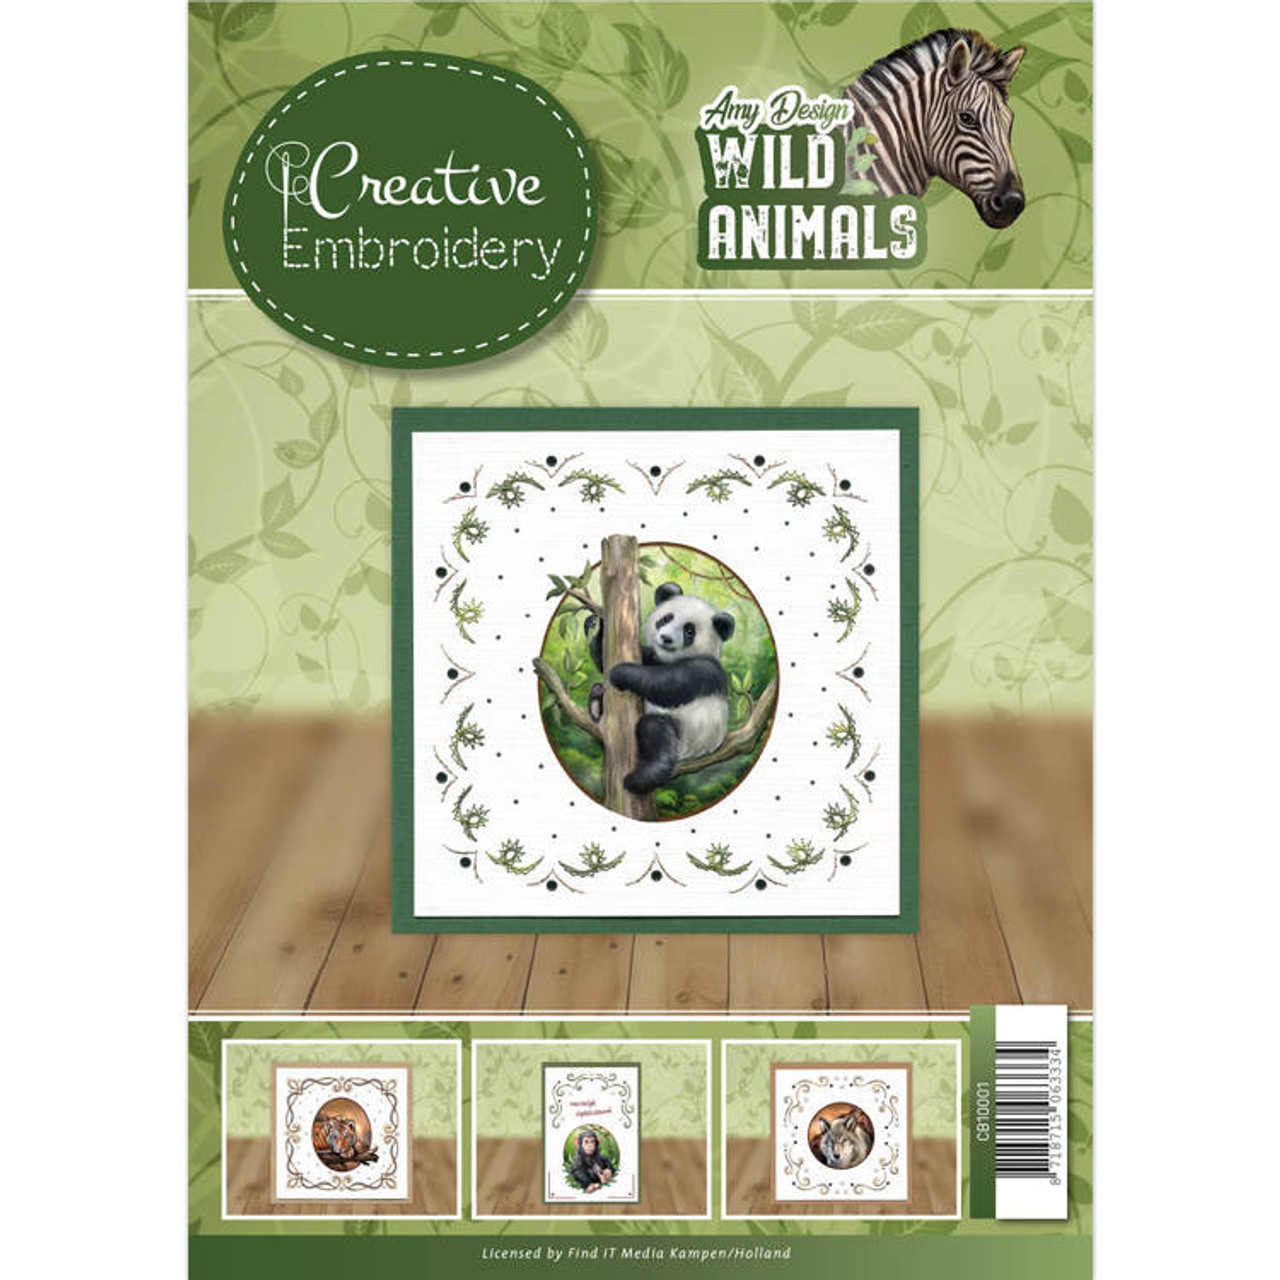 Creative Embroidery Amy Design A4 Booklet - Wild Animals